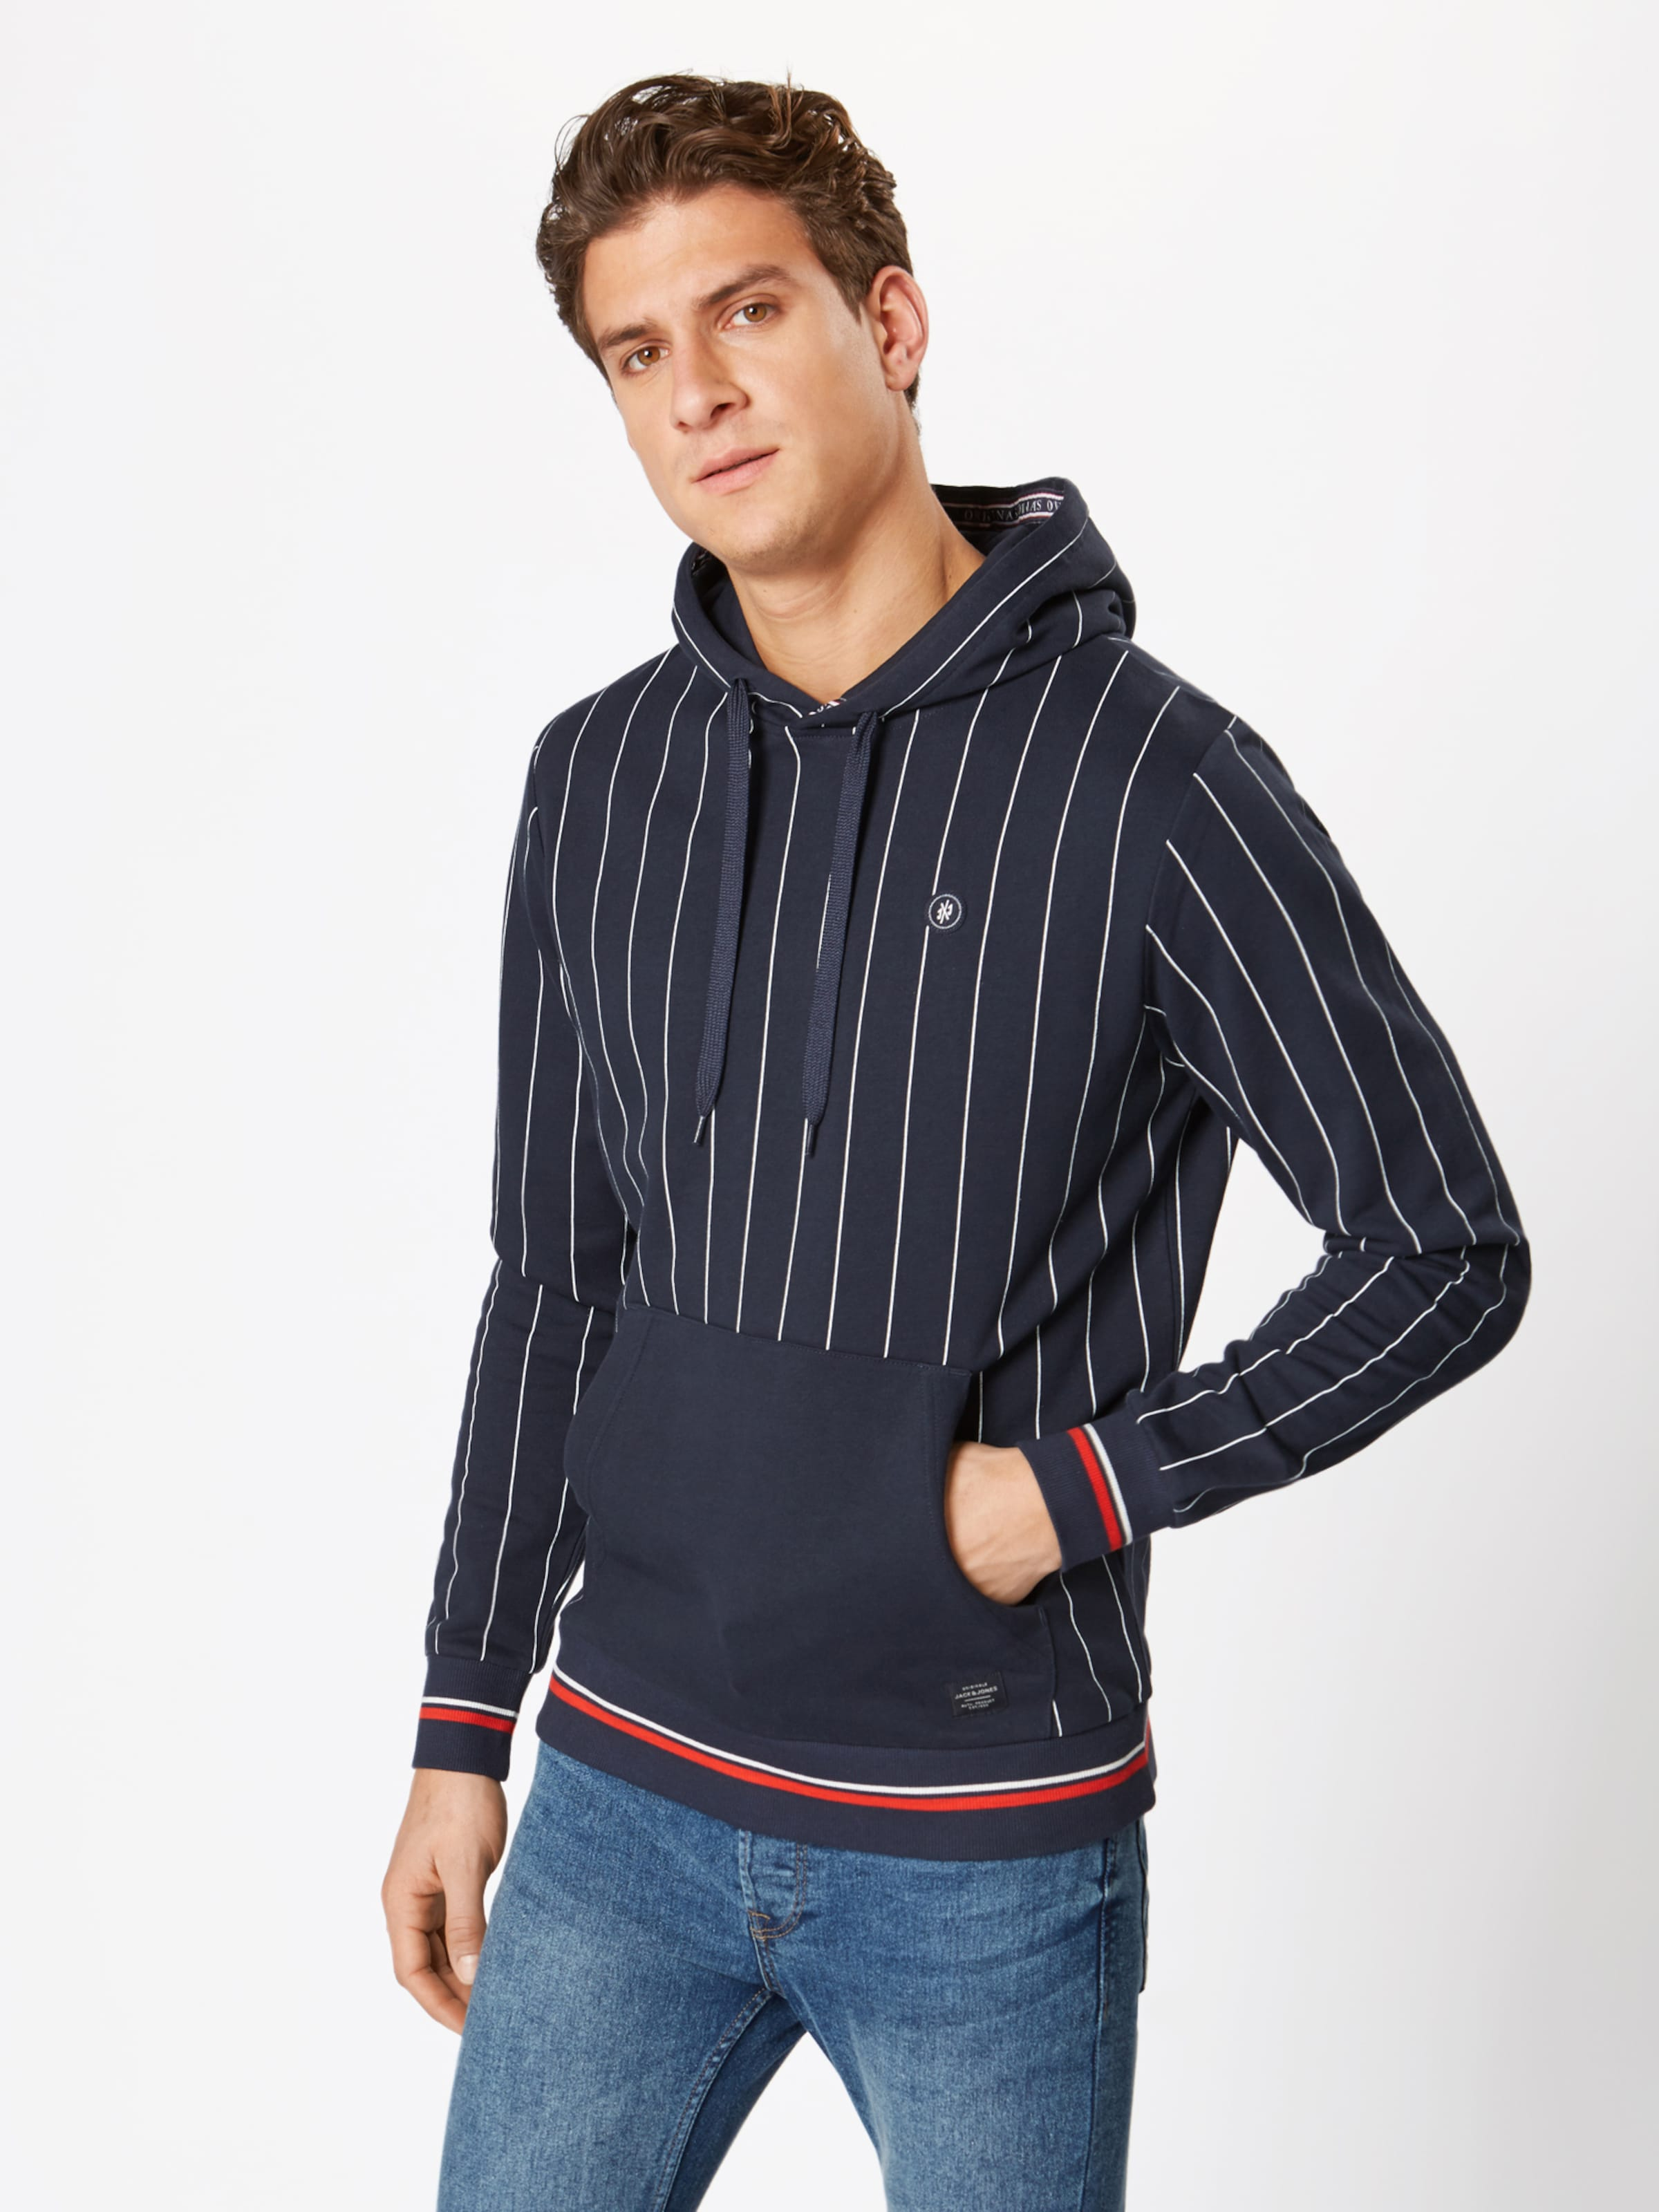 Jones Sweat En FoncéBlanc 'pinstripe' Bleu shirt Jackamp; reCoxBd